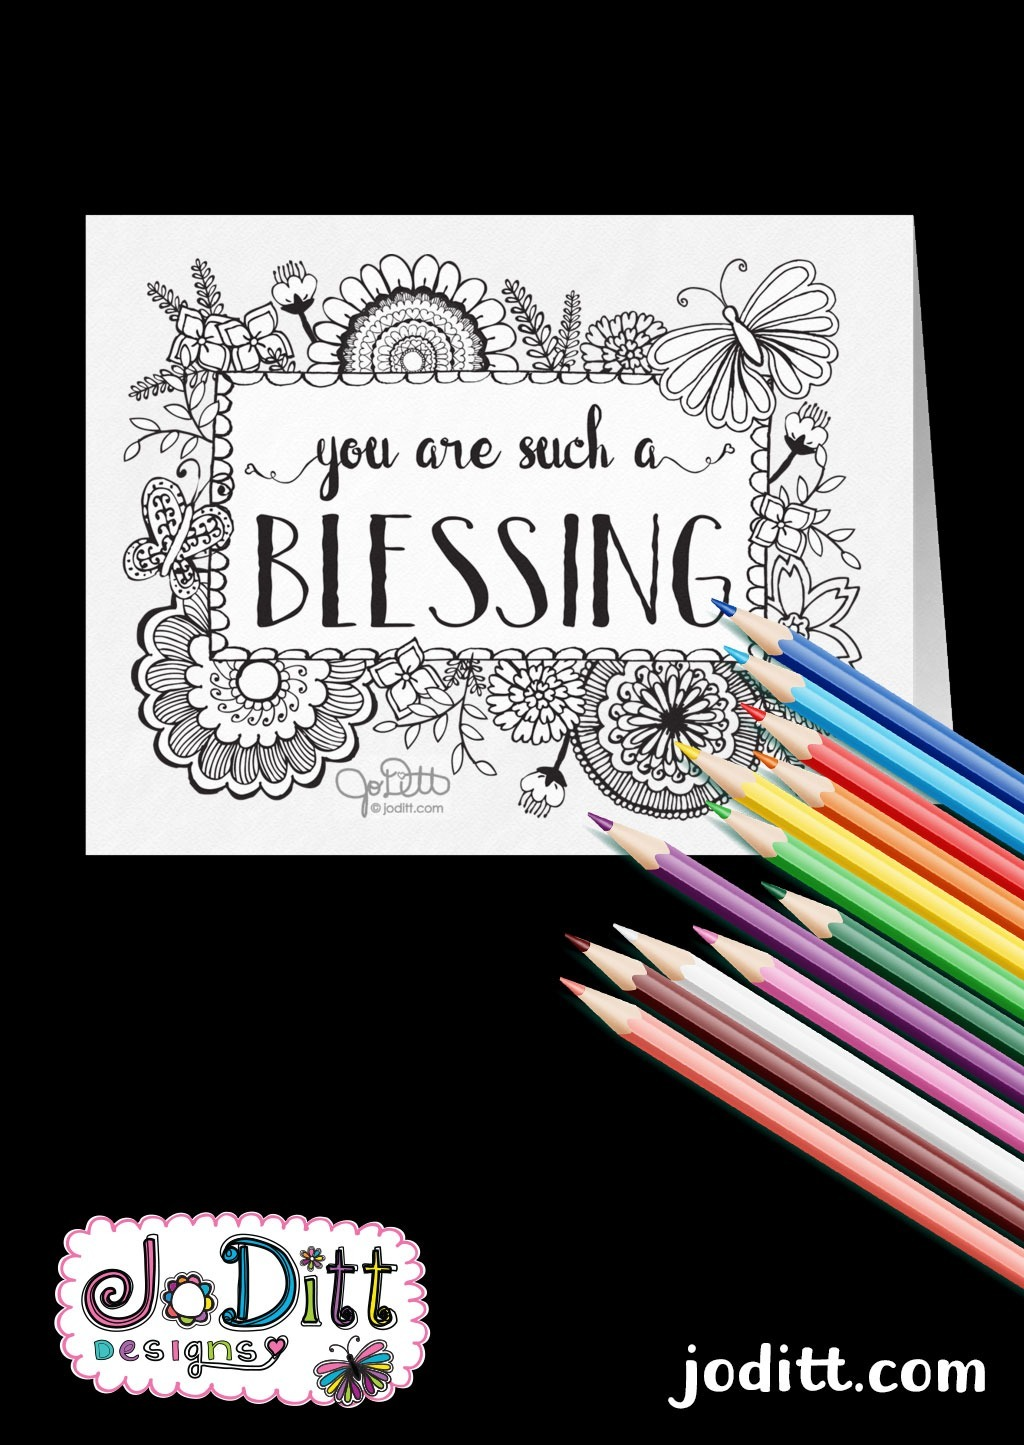 You are Such a Blessing Coloring Card by JoDitt Designs